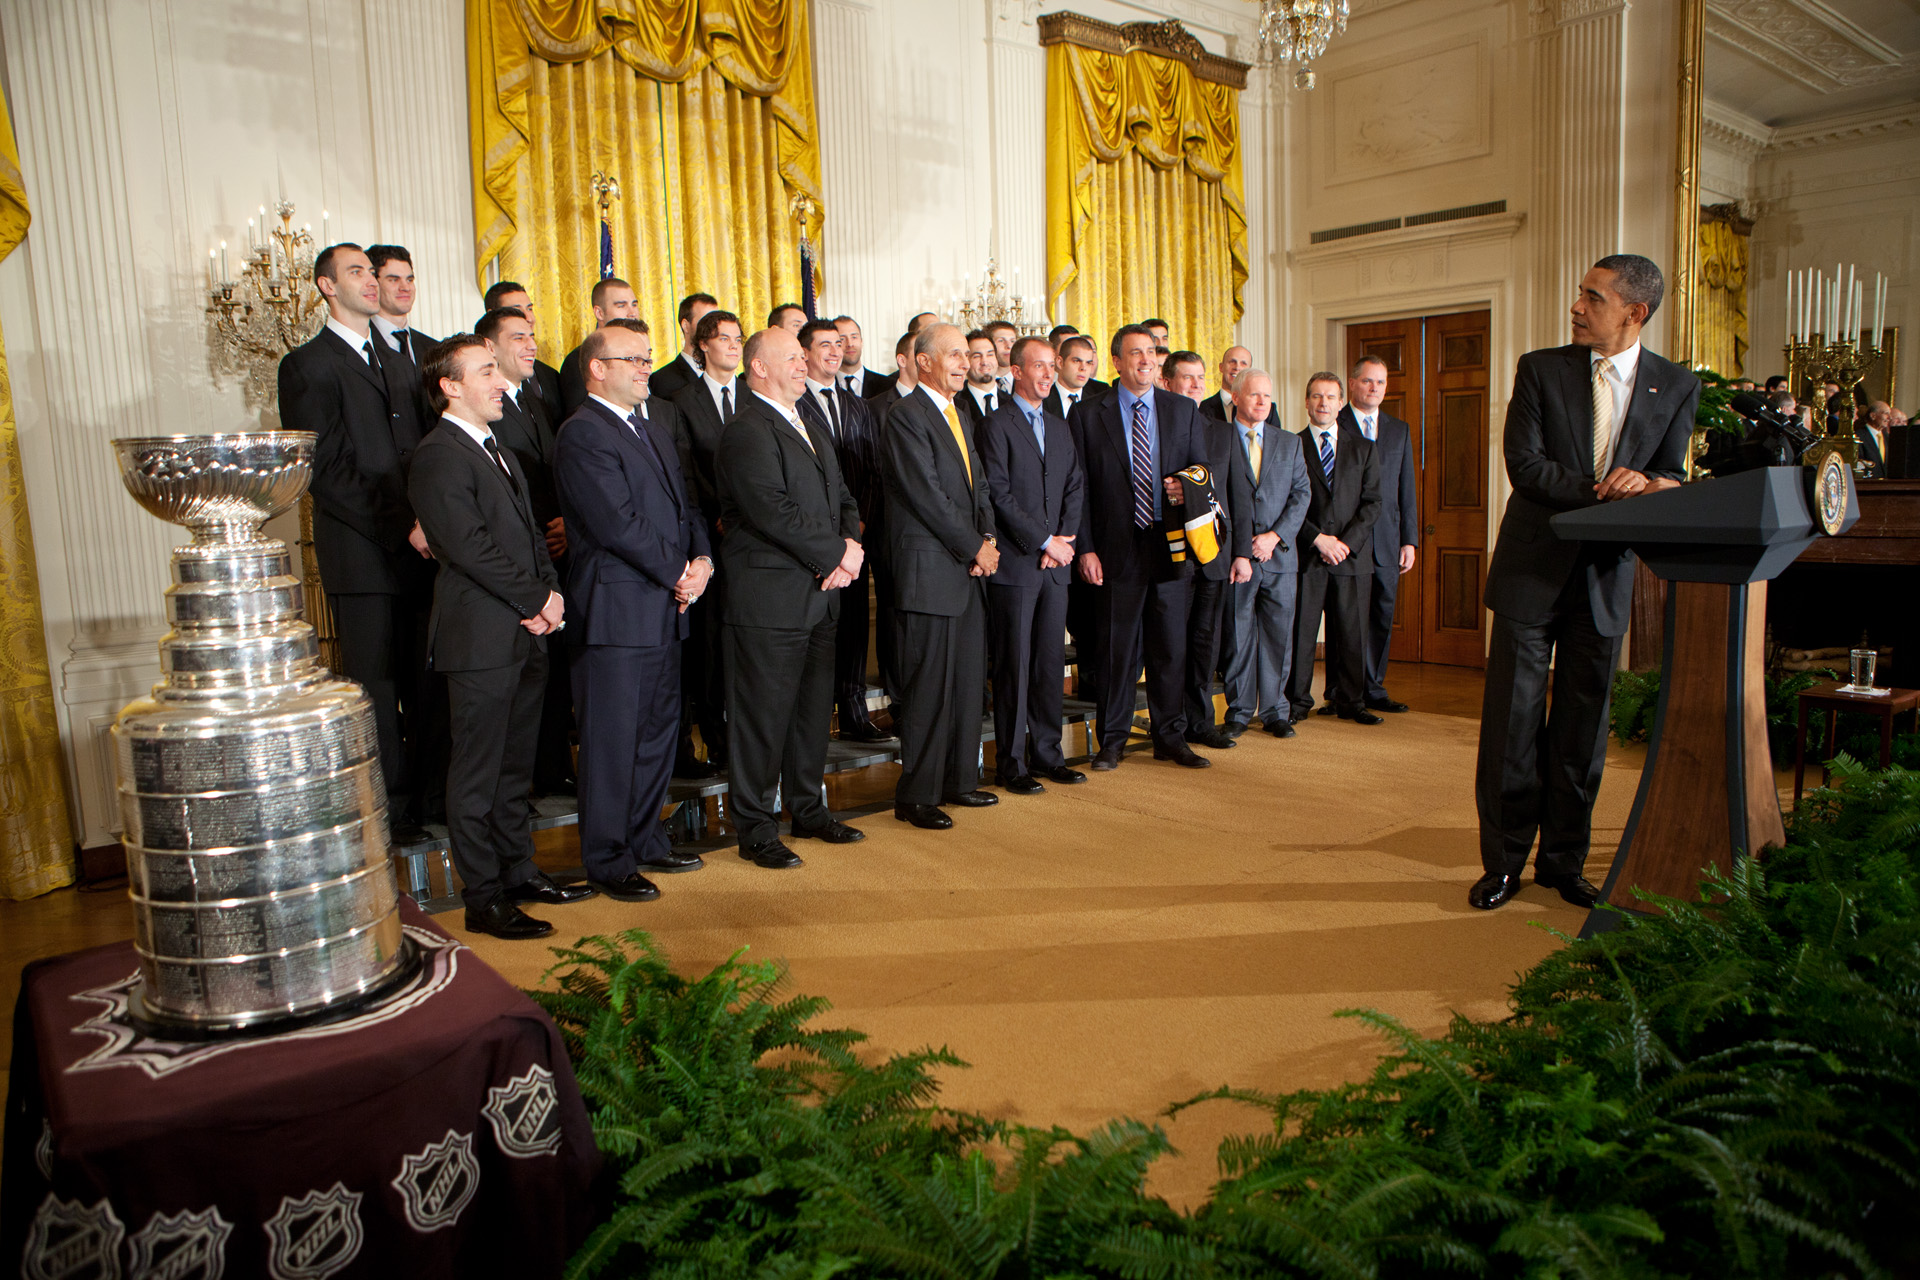 President Obama welcomes the Boston Bruins to the White House